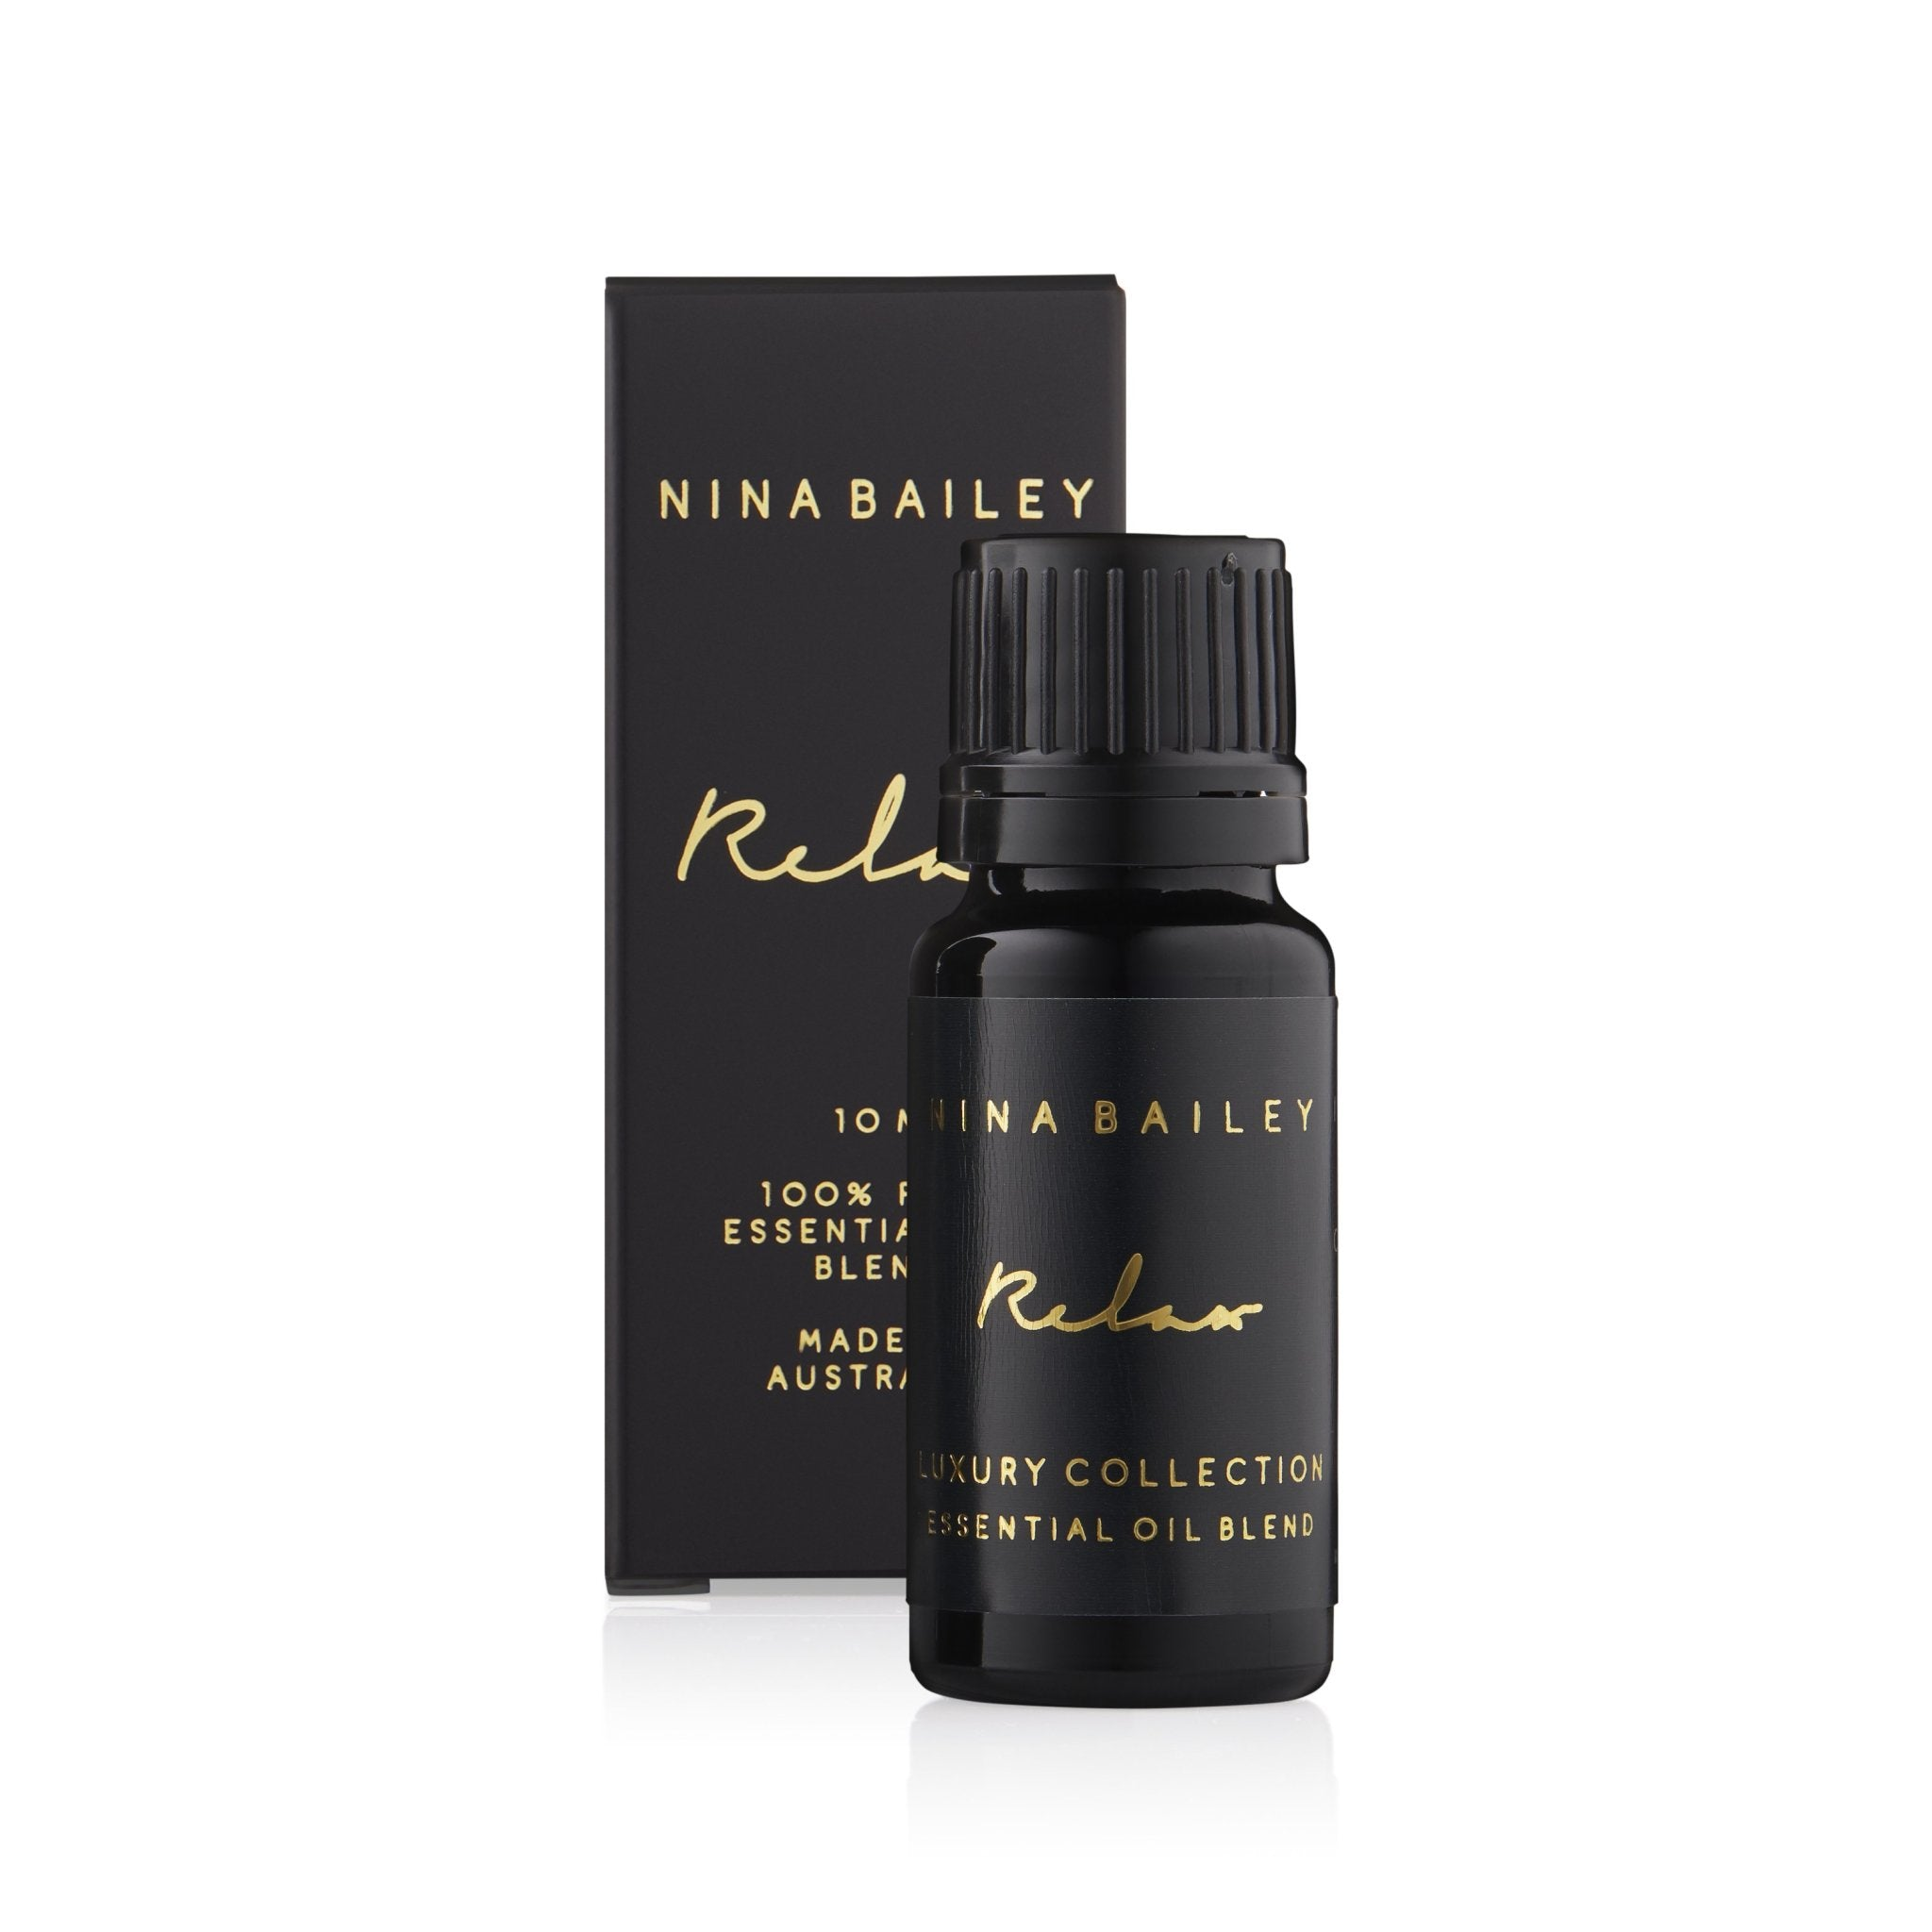 Relax Essential Oil Blend - Nina Bailey